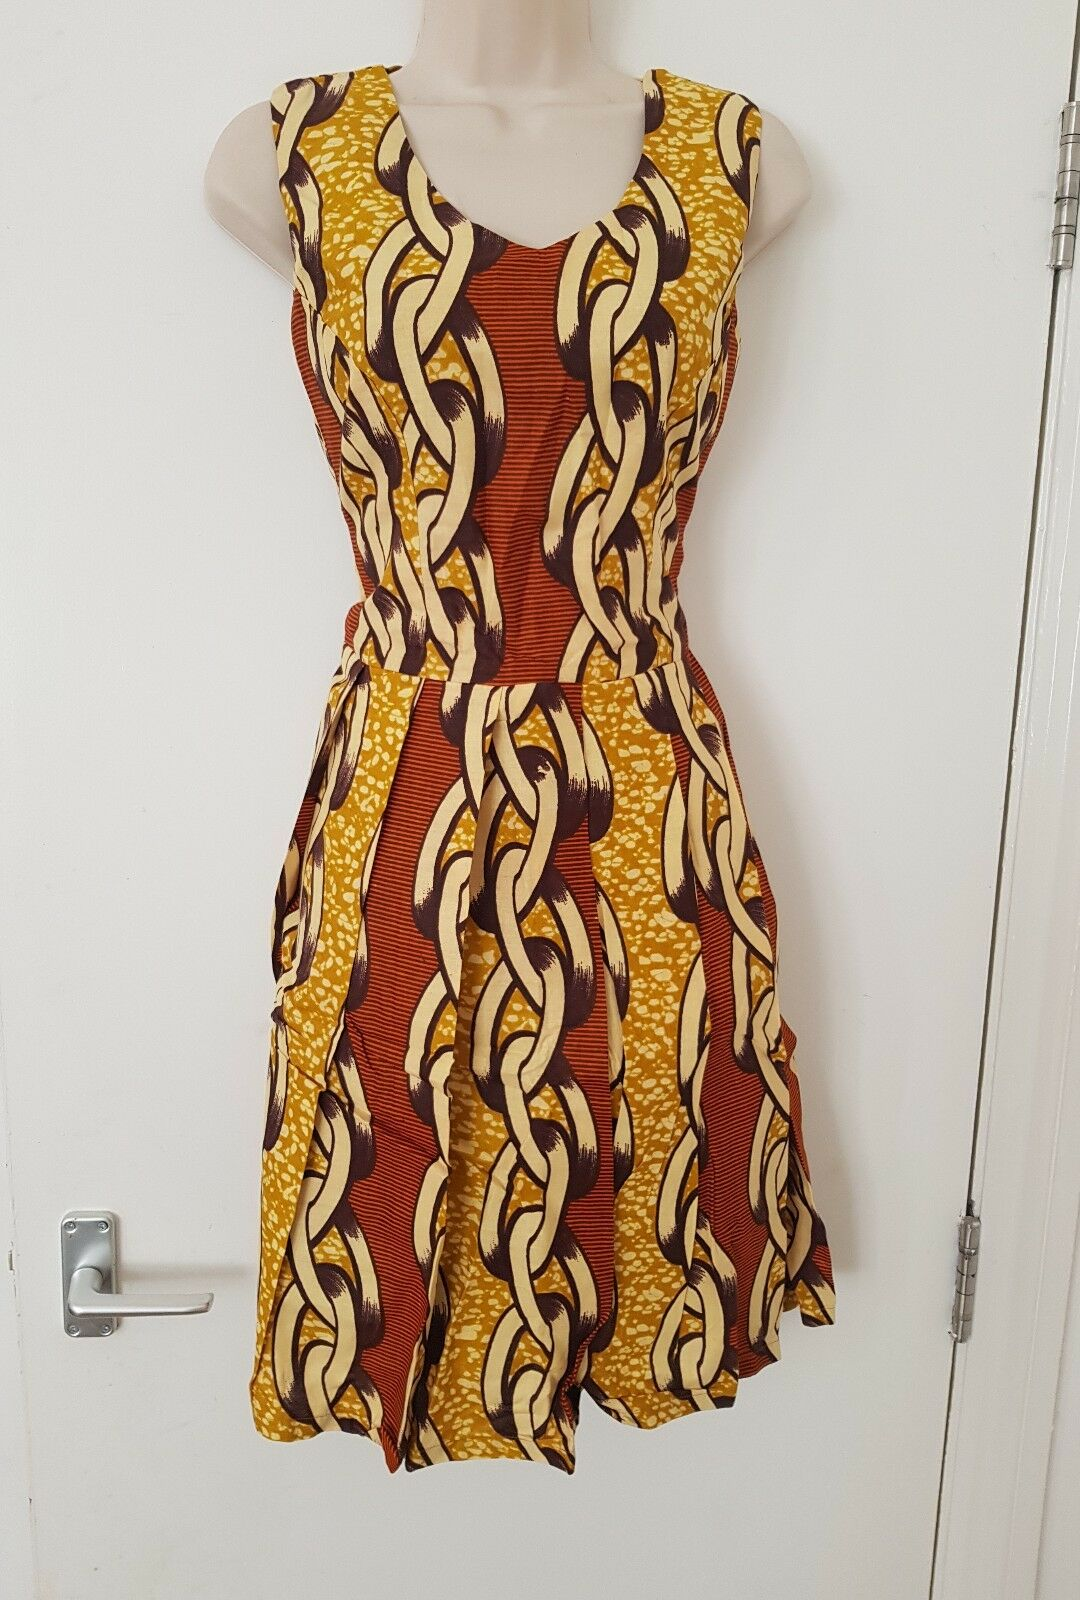 HANDMADE AFRICAN PRINT DRESS SIZE  10 KNEE LENGTH, FREE UK DELIVERY